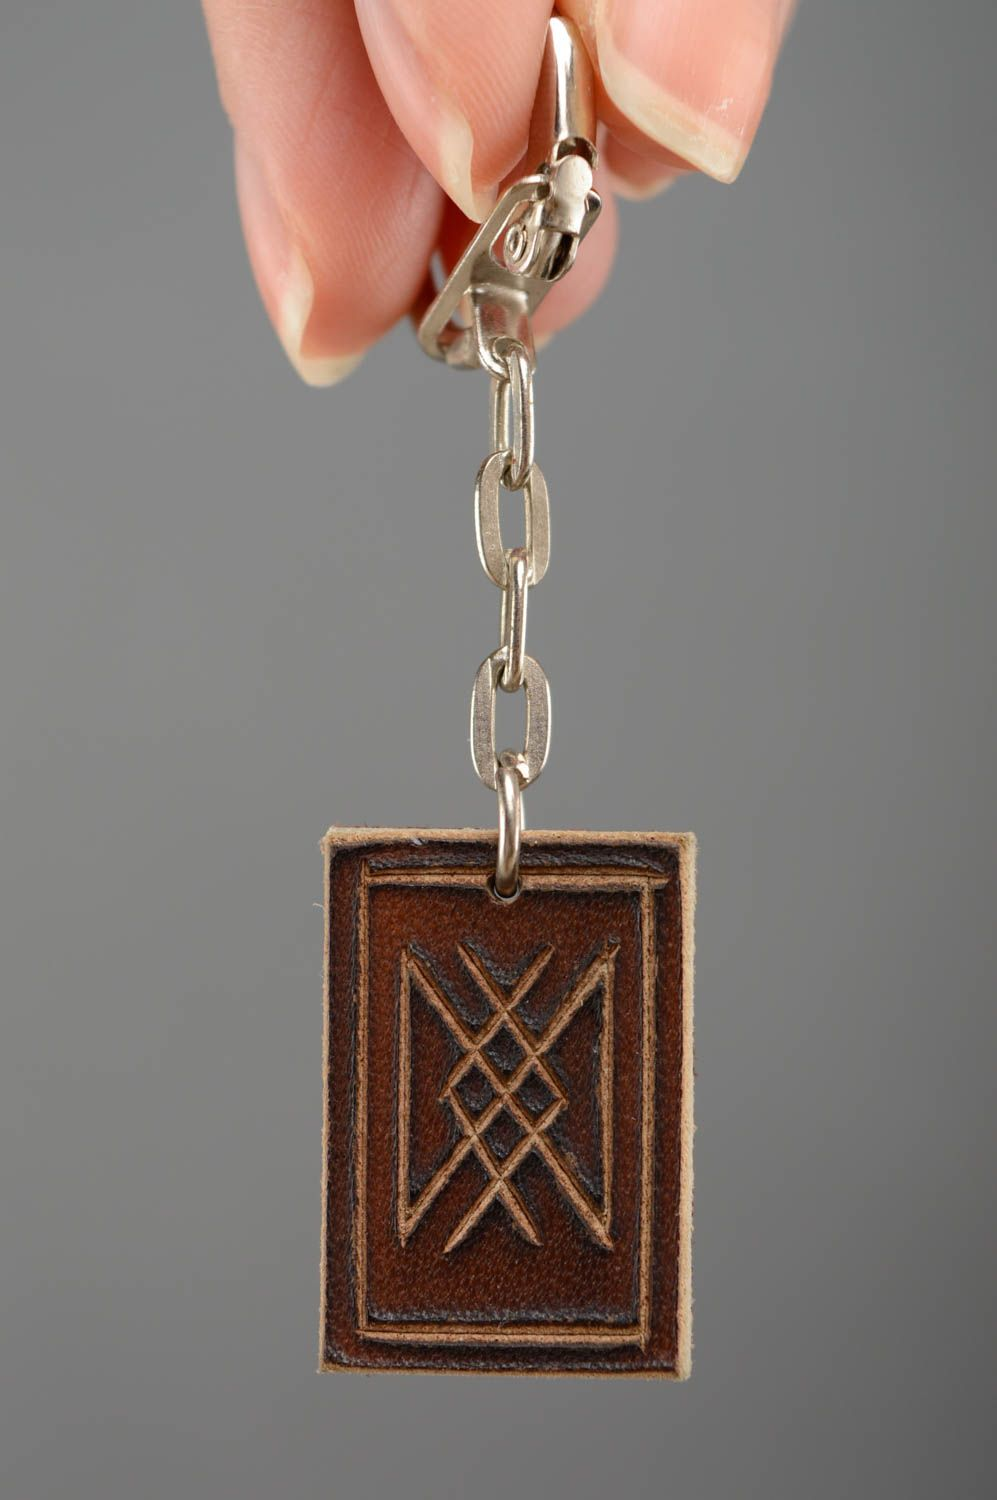 keychains Leather keychain with runes for longevity - MADEheart.com